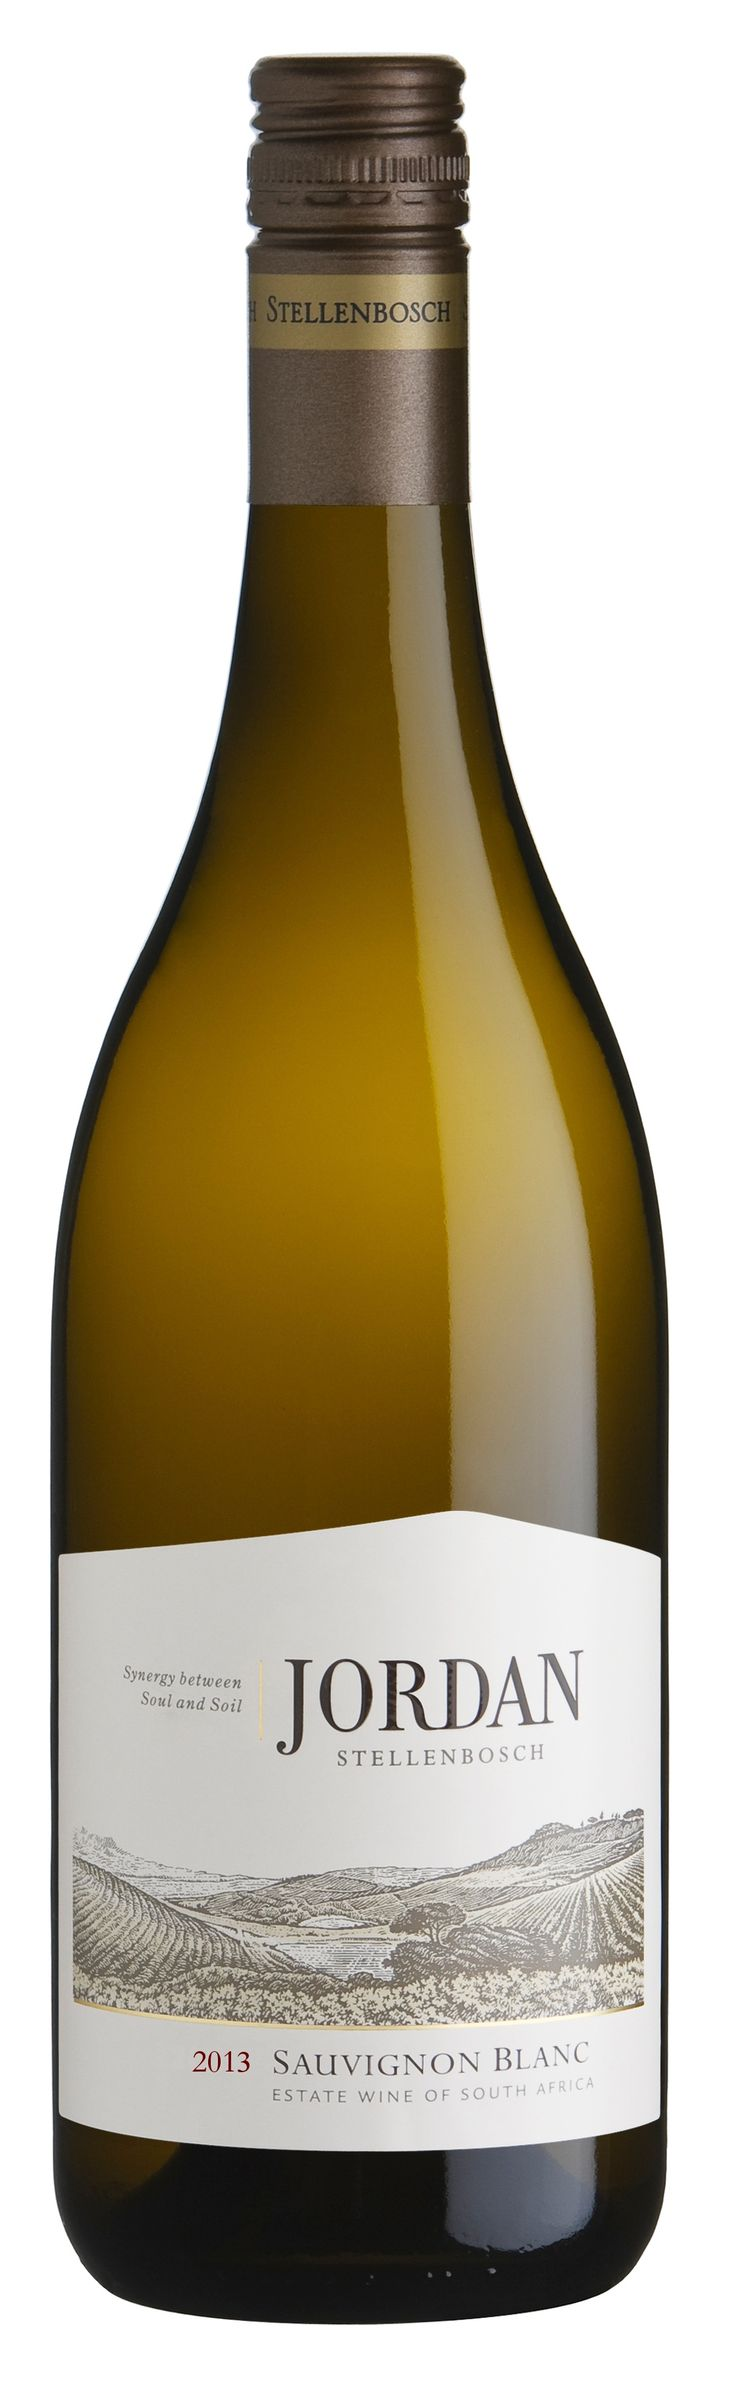 """100% Sauvignon Blanc - The grapes were destemmed before receiving approximately 6 hours skin contact. After gentle pressing in a pneumatic """"tank"""" press, the juice was cold settled for 2 days before being racked and inoculated with selected yeasts. All the vineyard blocks were kept separate and fermentation took place between 12-16C."""